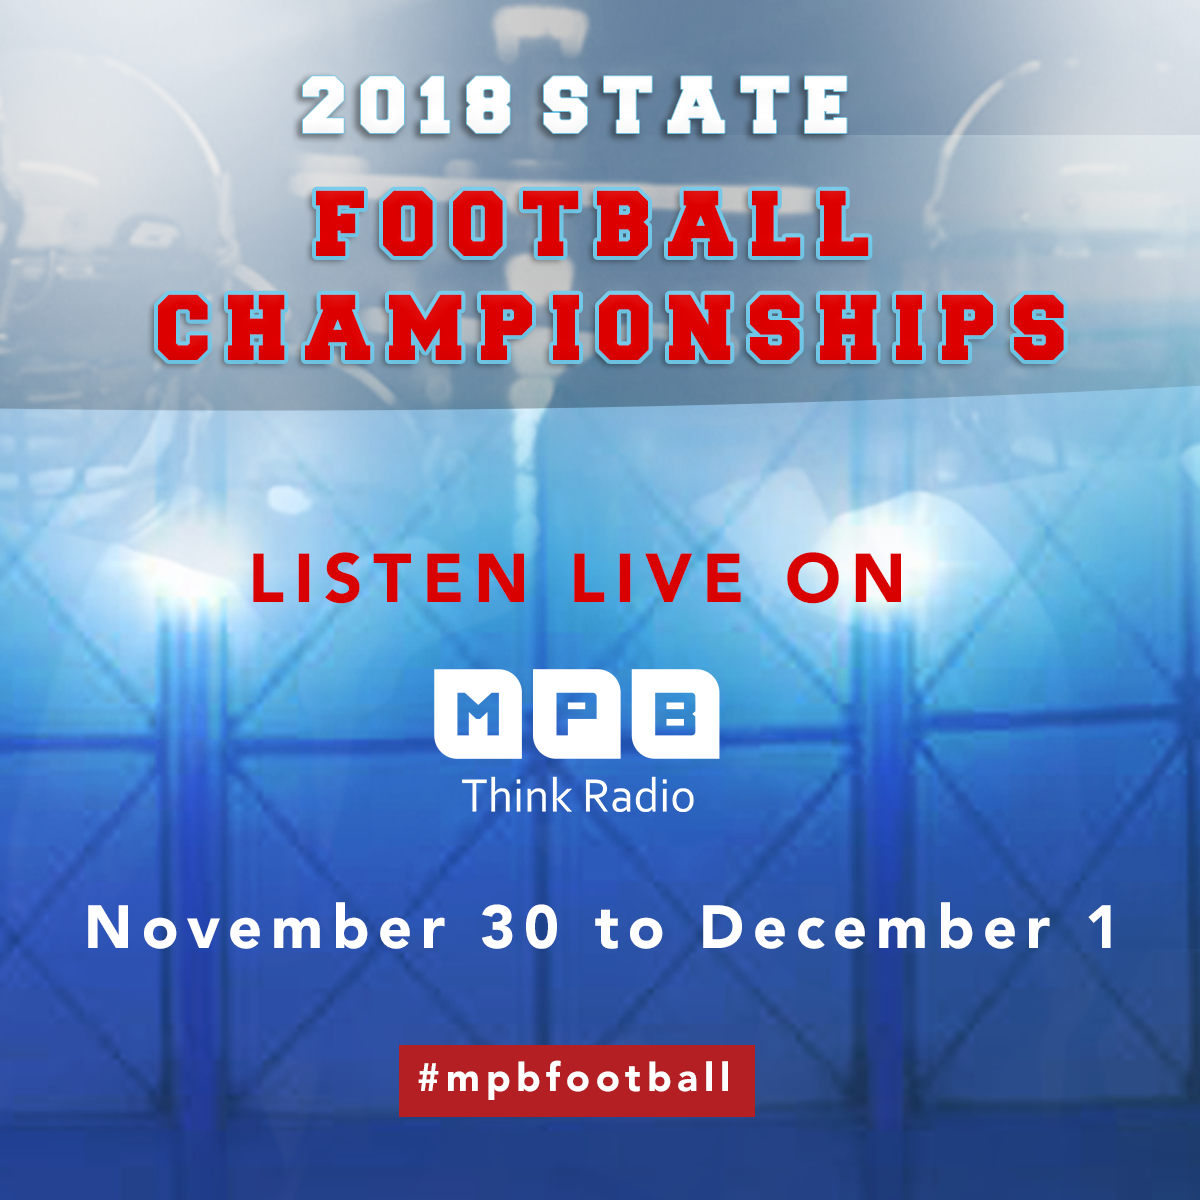 Listen live to the 2018 Football Championships on MPB Think Radio Nov. 30 and Dec. 1.